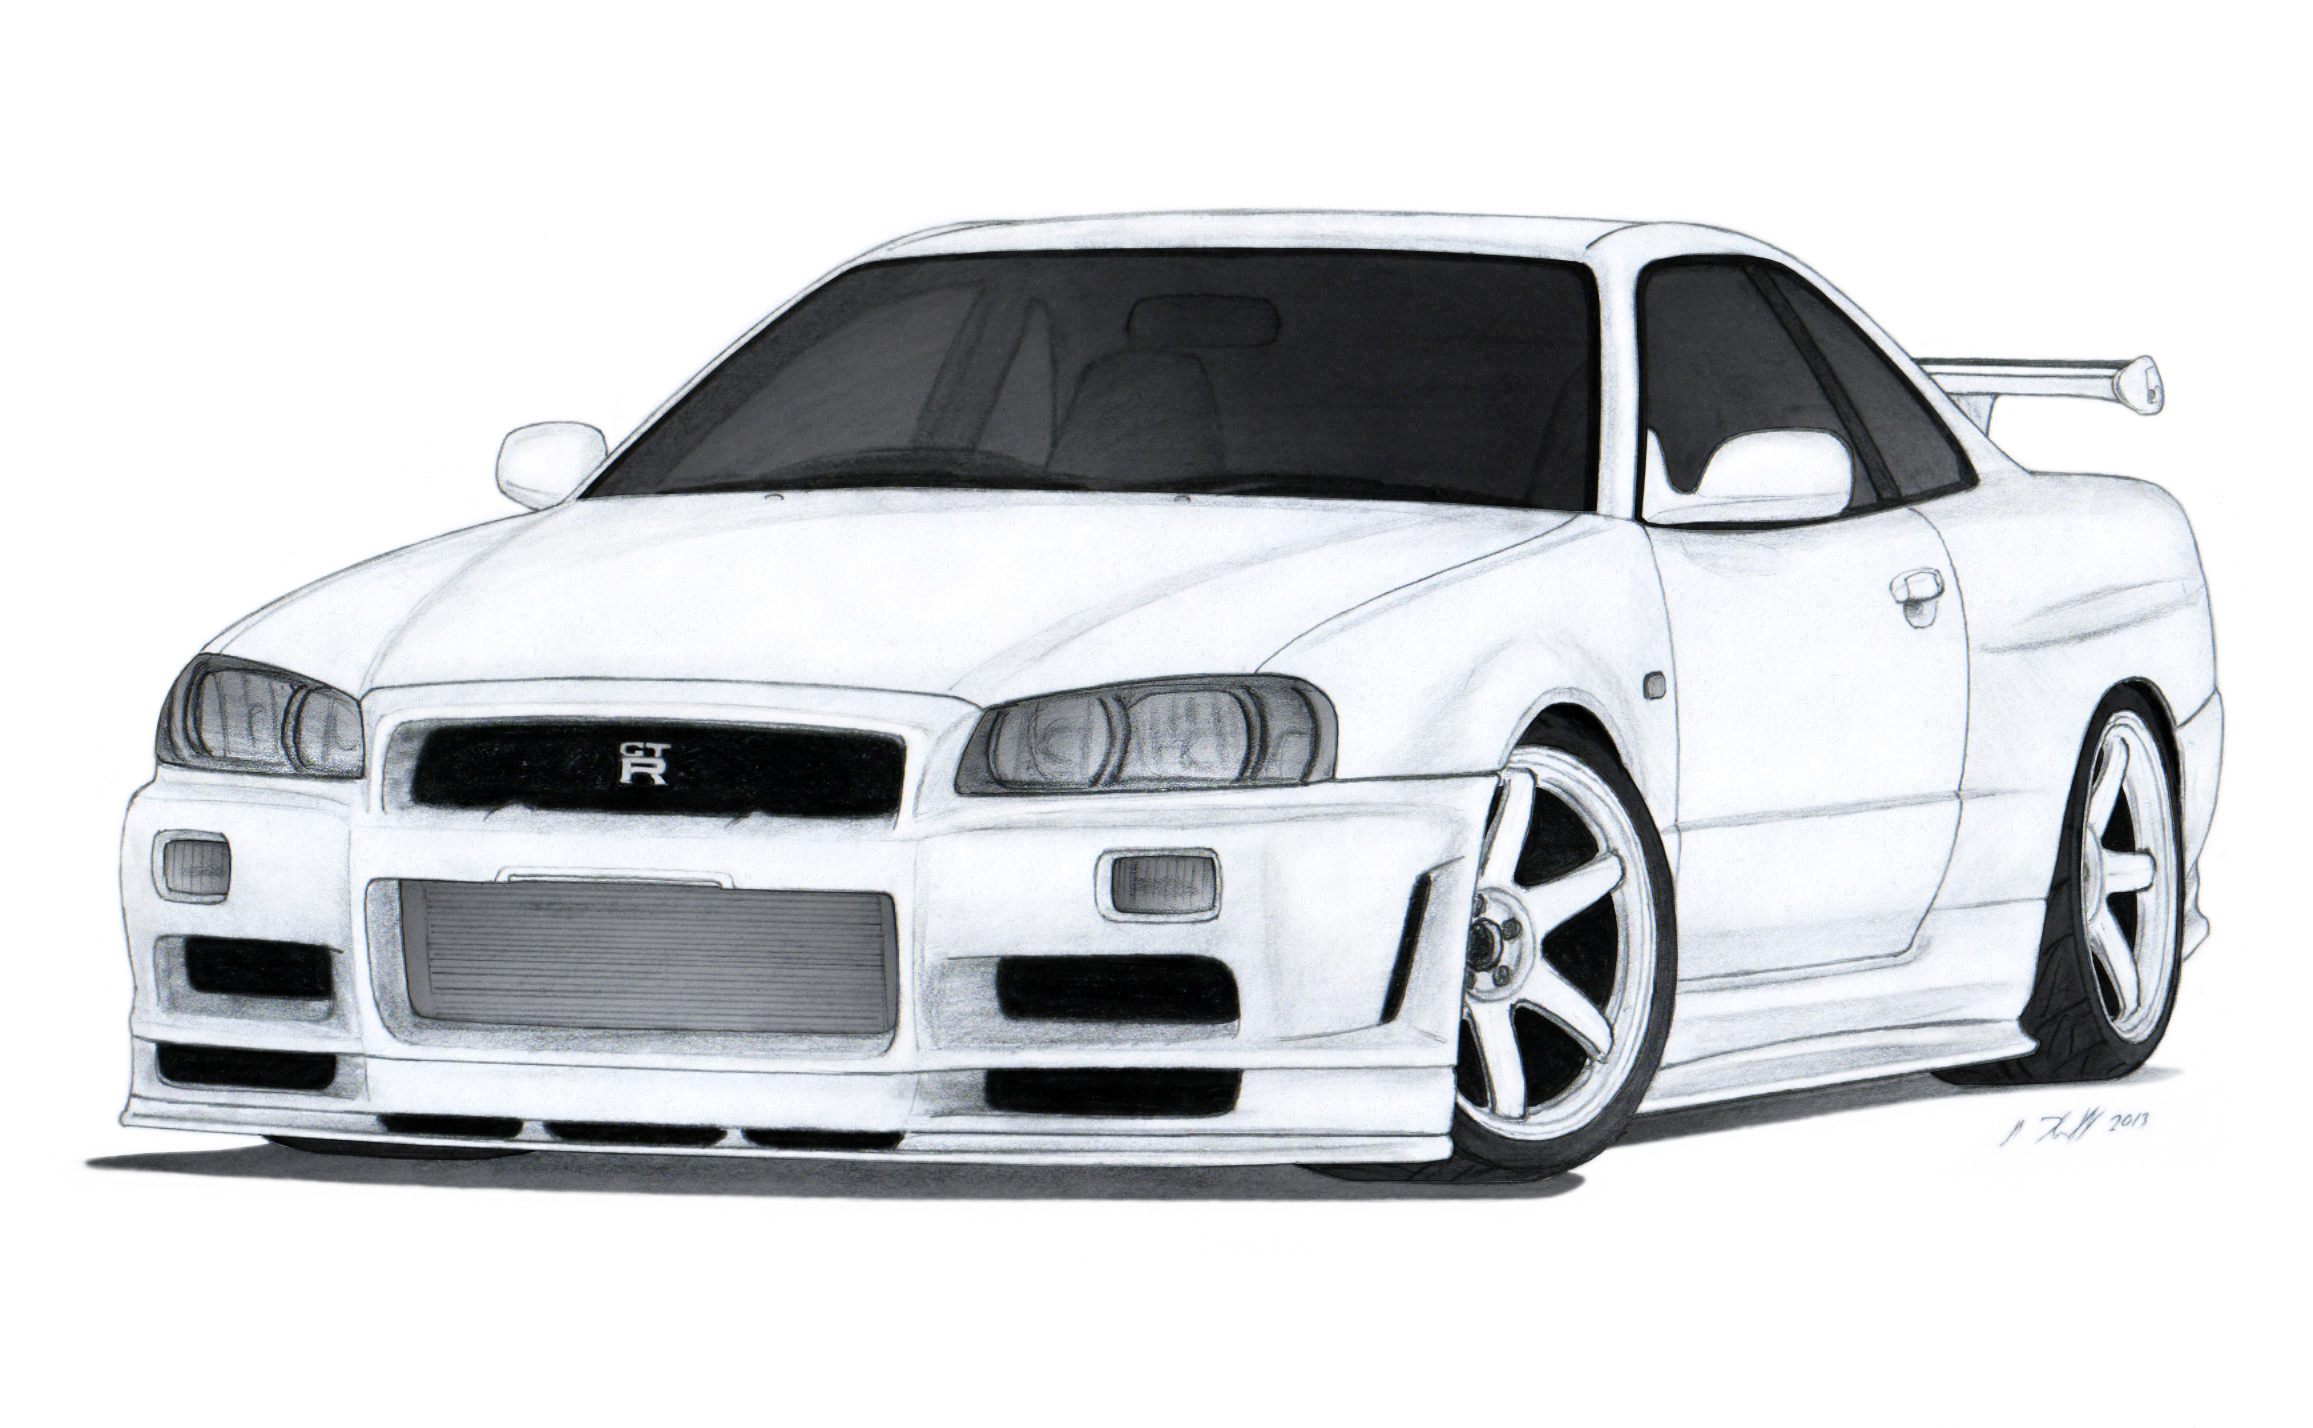 drifting skyline r34